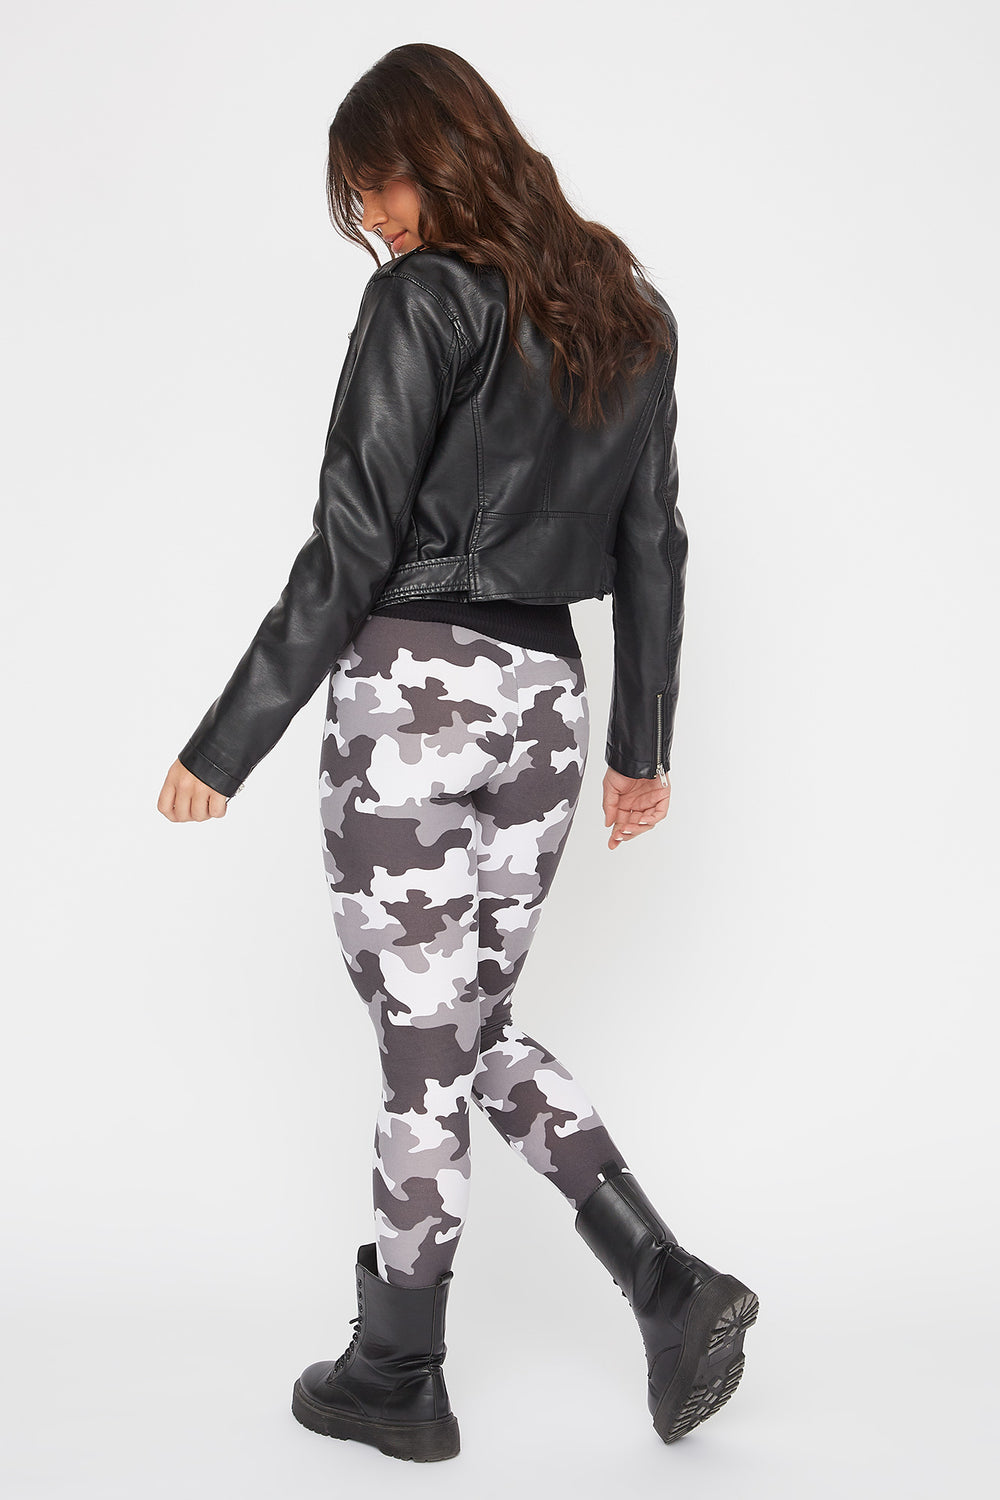 Camo Printed Leggings Black with White